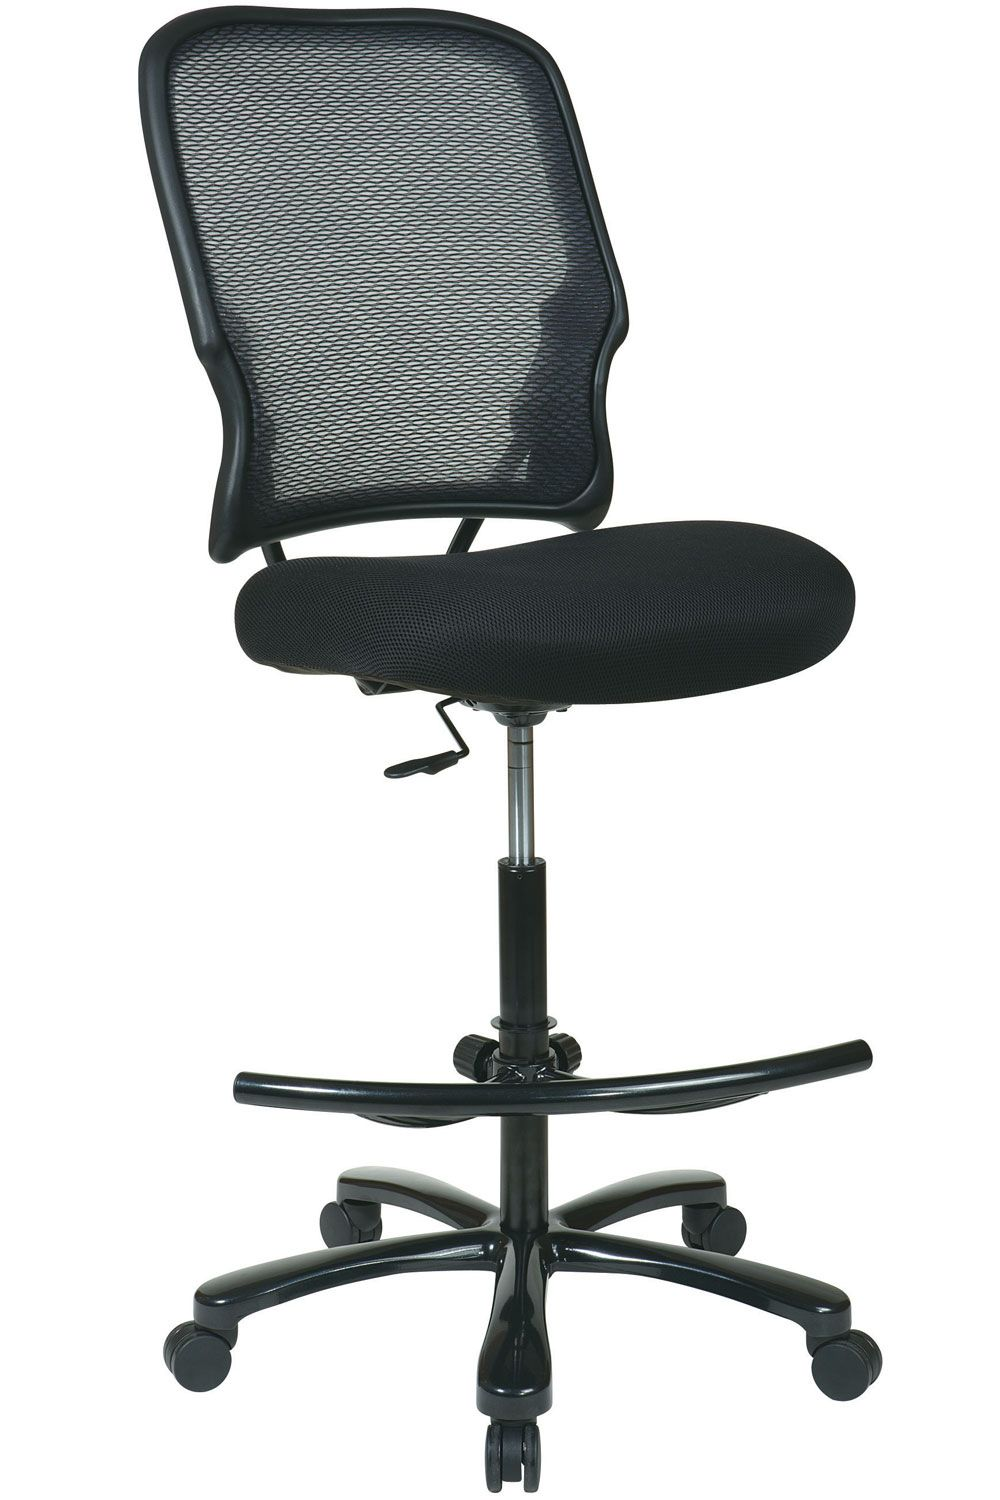 50 Marco Chelsea Tall Office Chair Black Contemporary Home Furniture Check More At